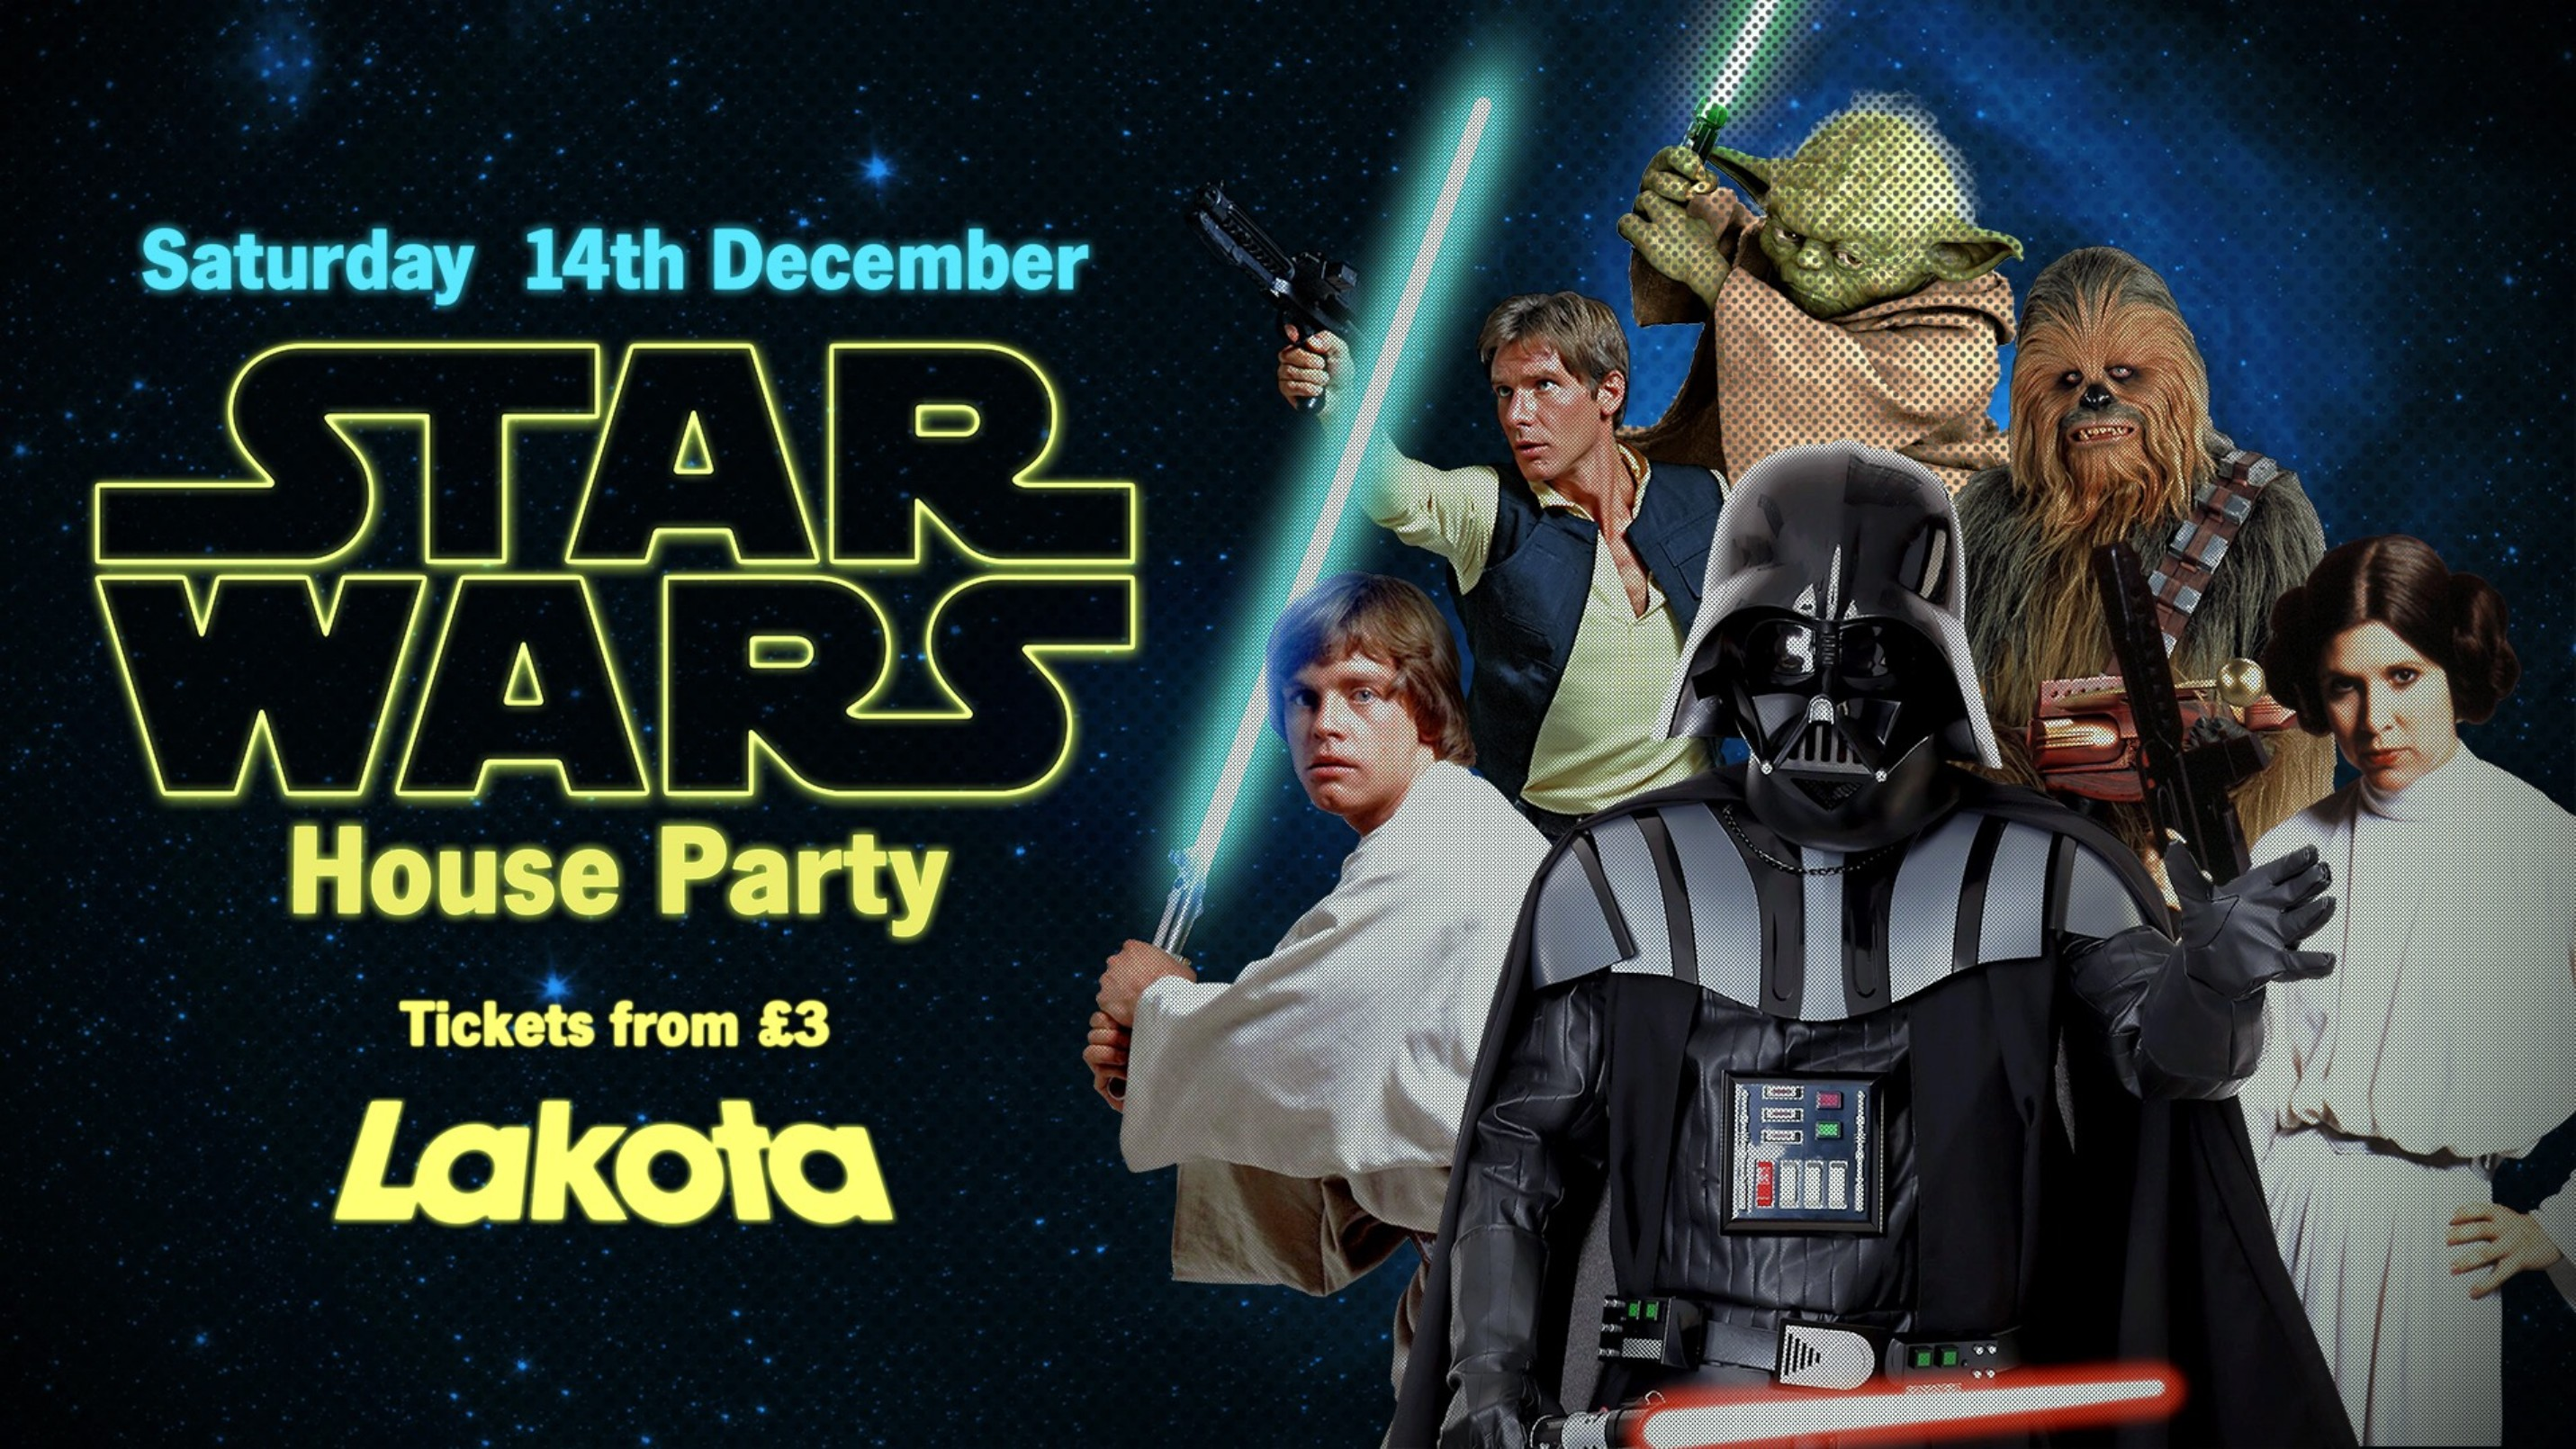 Star Wars House Party